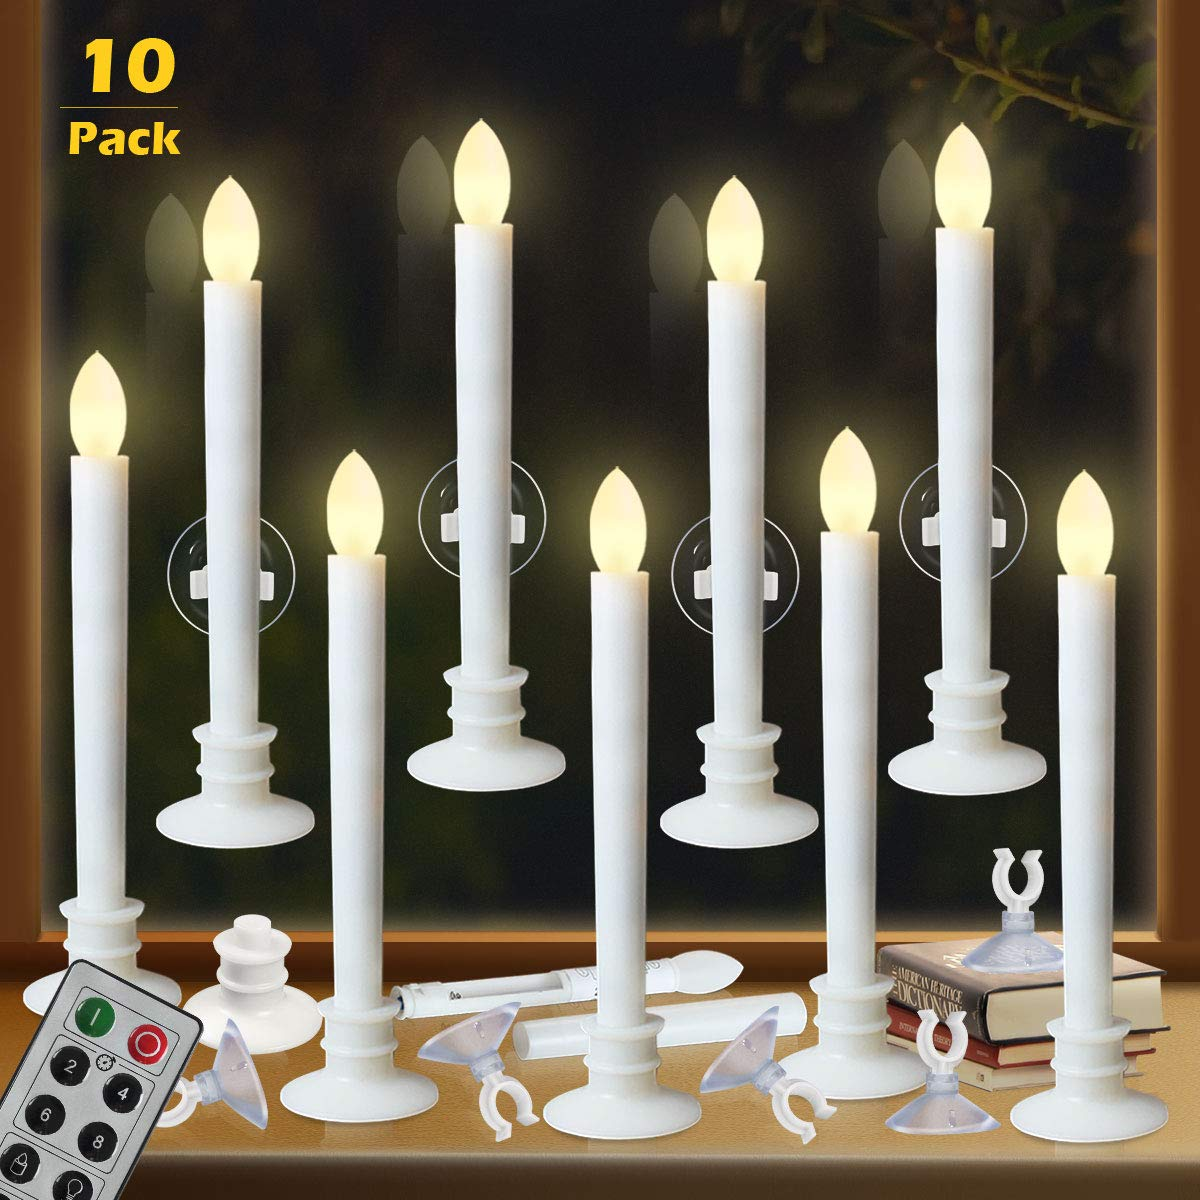 Window Candles with Remote Timers Battery Operated Flickering Flameless Led Electric Candle Lights with 10pcs White Base and 10pcs Suction Cups Taper Candle Holder for Christmas Decorations